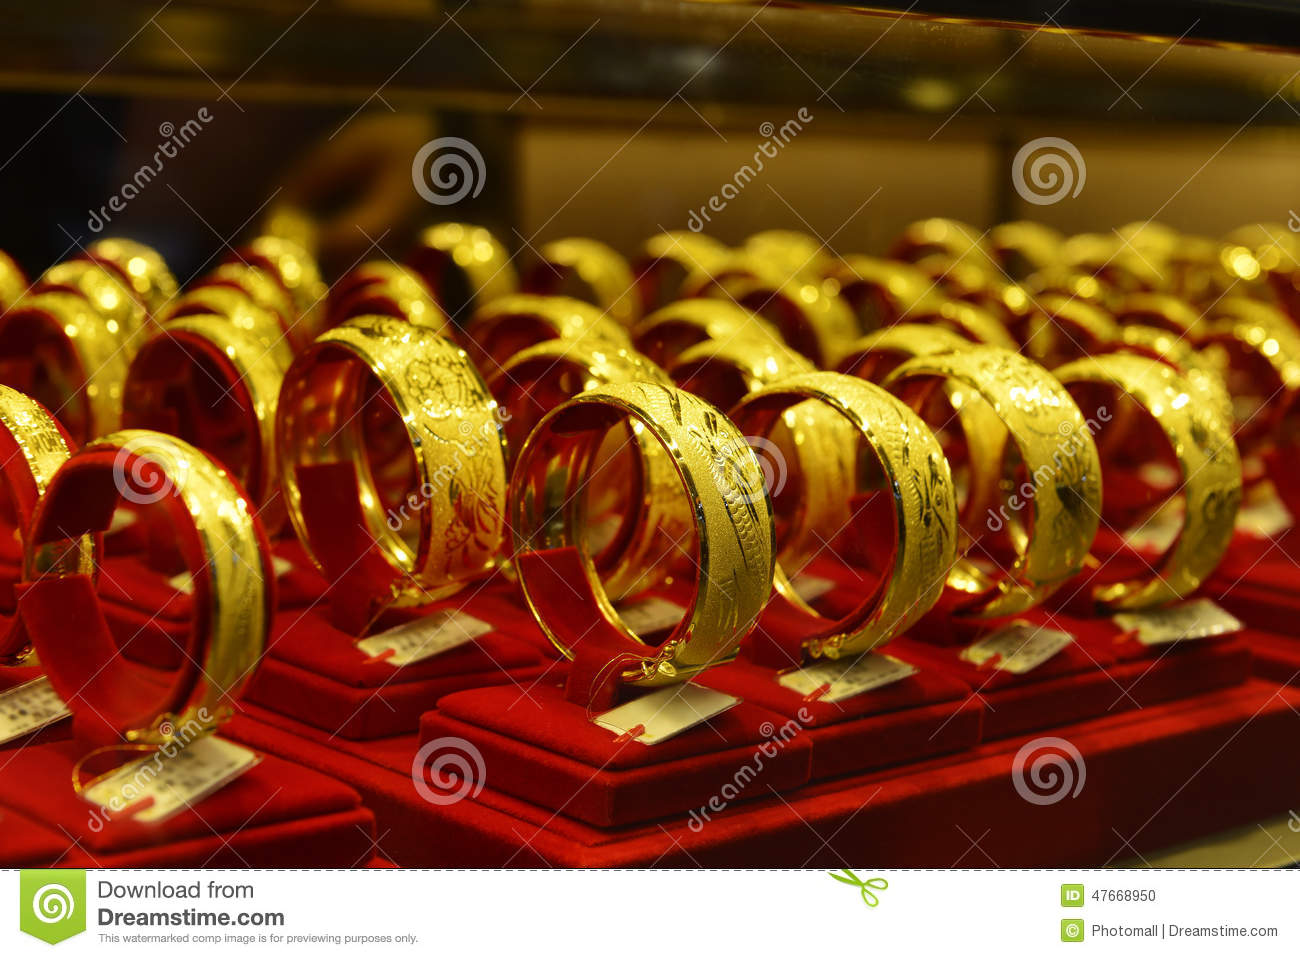 Gold Jewellery In A Shop Window Stock Image Image of shopping